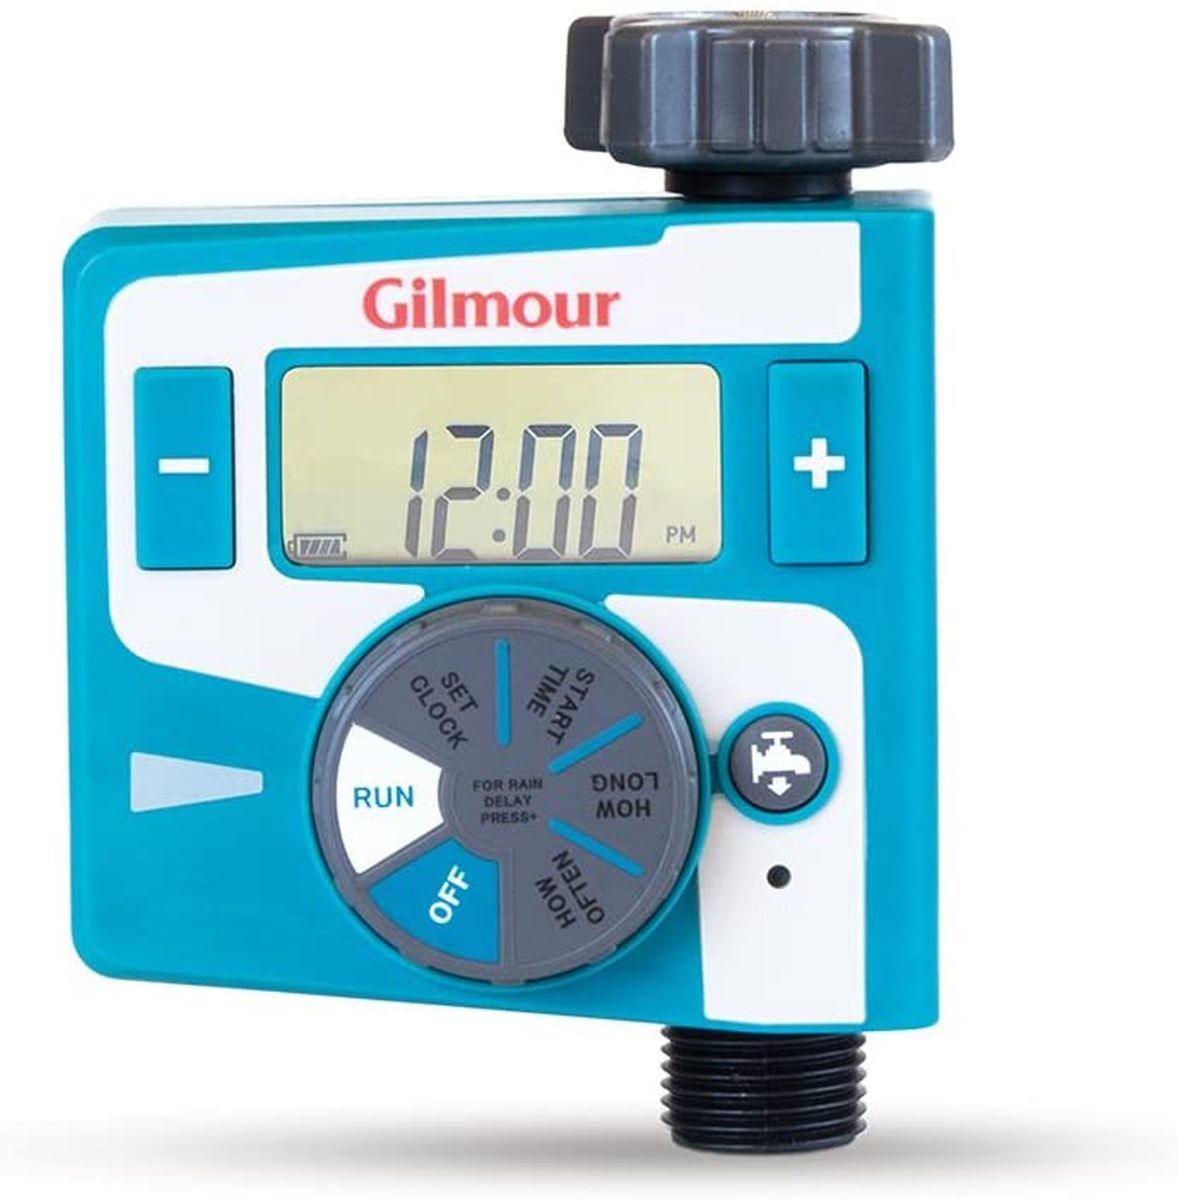 Gilmour Electronic Water Timer